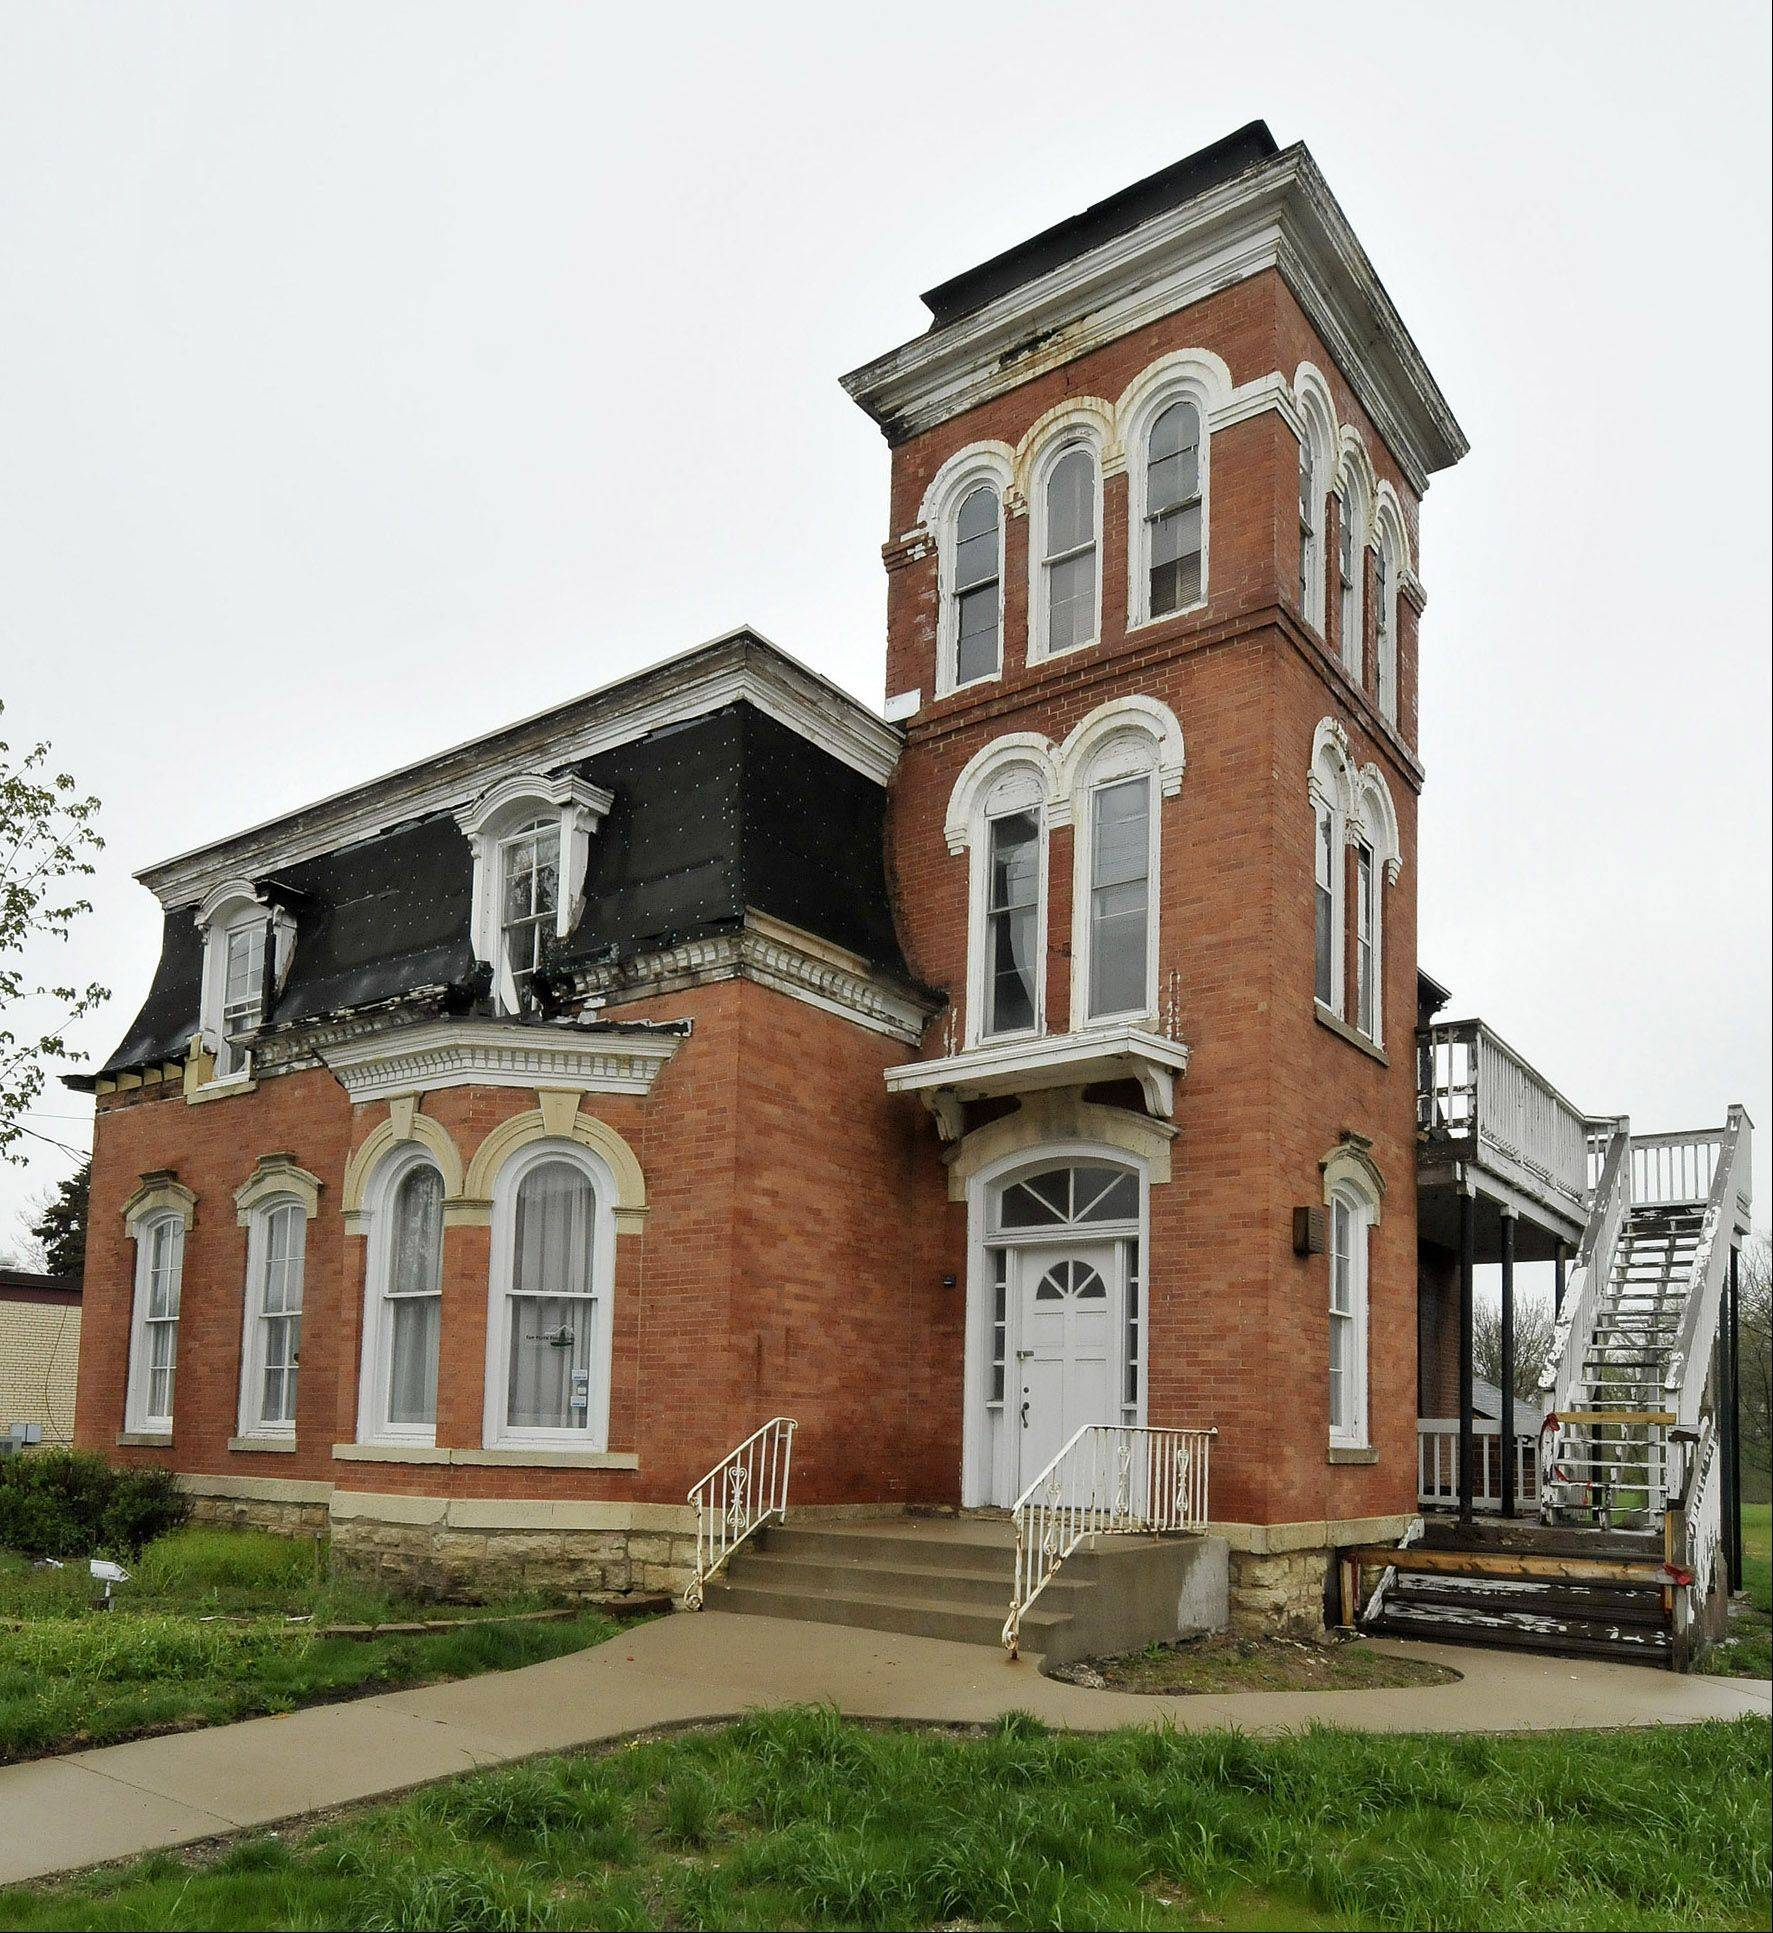 The Joel Wiant House in West Chicago has been named one the state's 10 most endangered historic places by the preservationist group Landmarks Illinois. The house, located at 151 W. Washington St., was built around 1869 for Joel Wiant, one of DuPage County's earliest settlers.